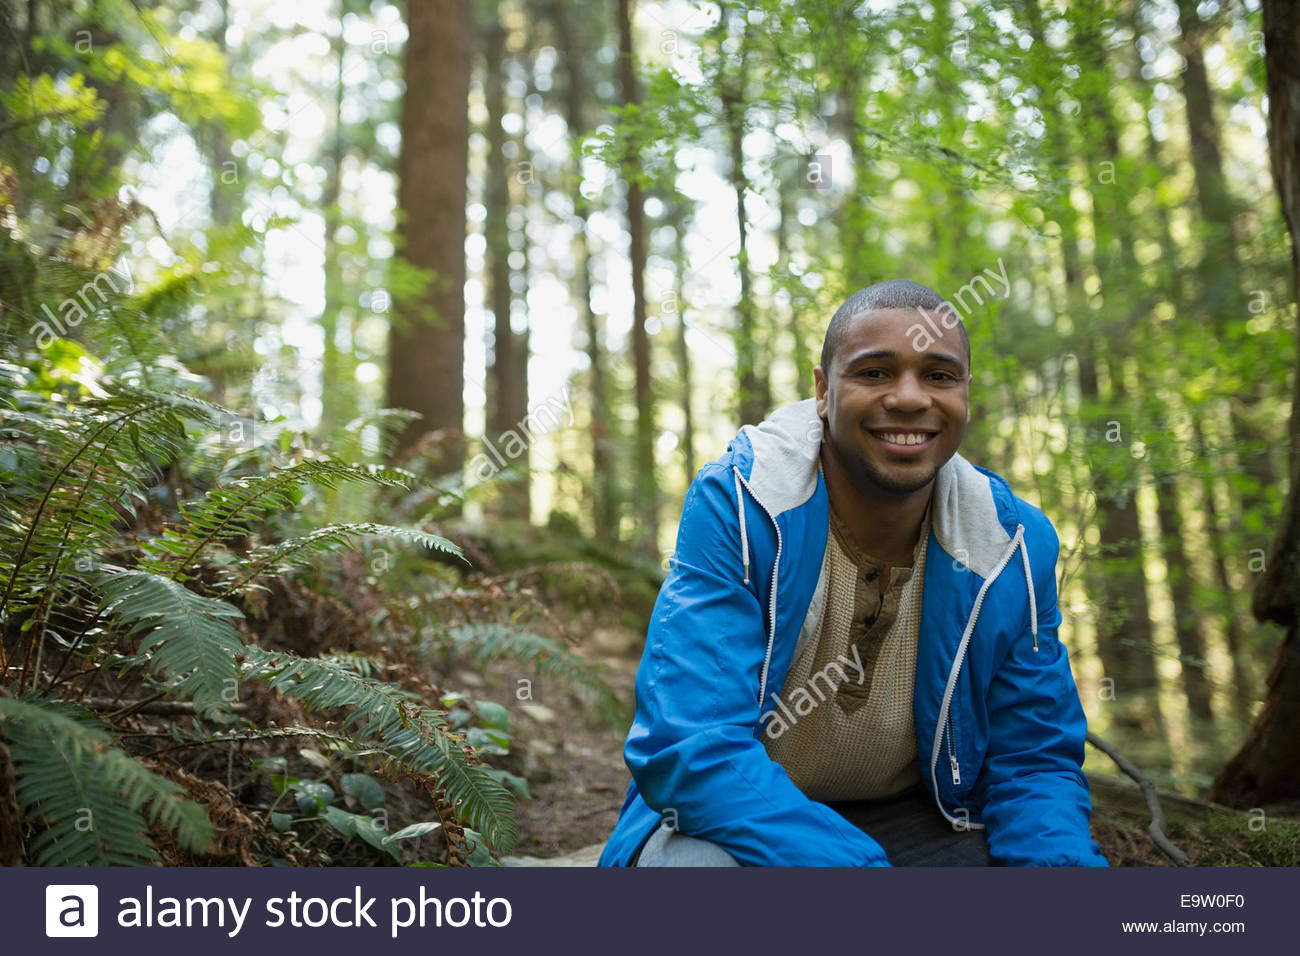 Portrait of young man smiling in woods - Stock Image